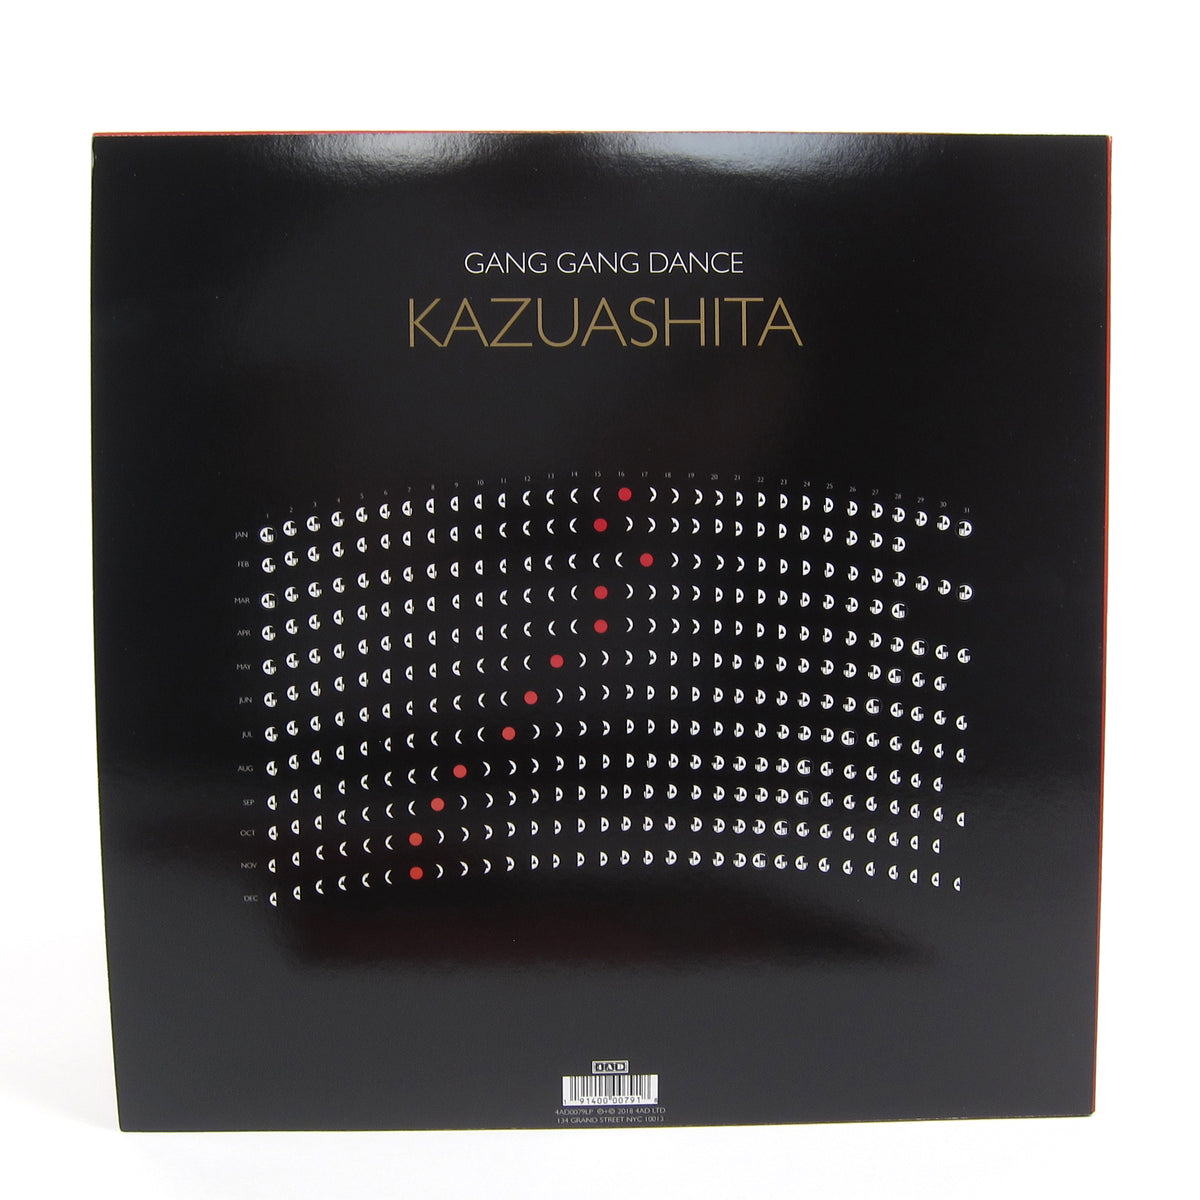 Gang Gang Dance: Kazuashita (Colored Vinyl) Vinyl LP